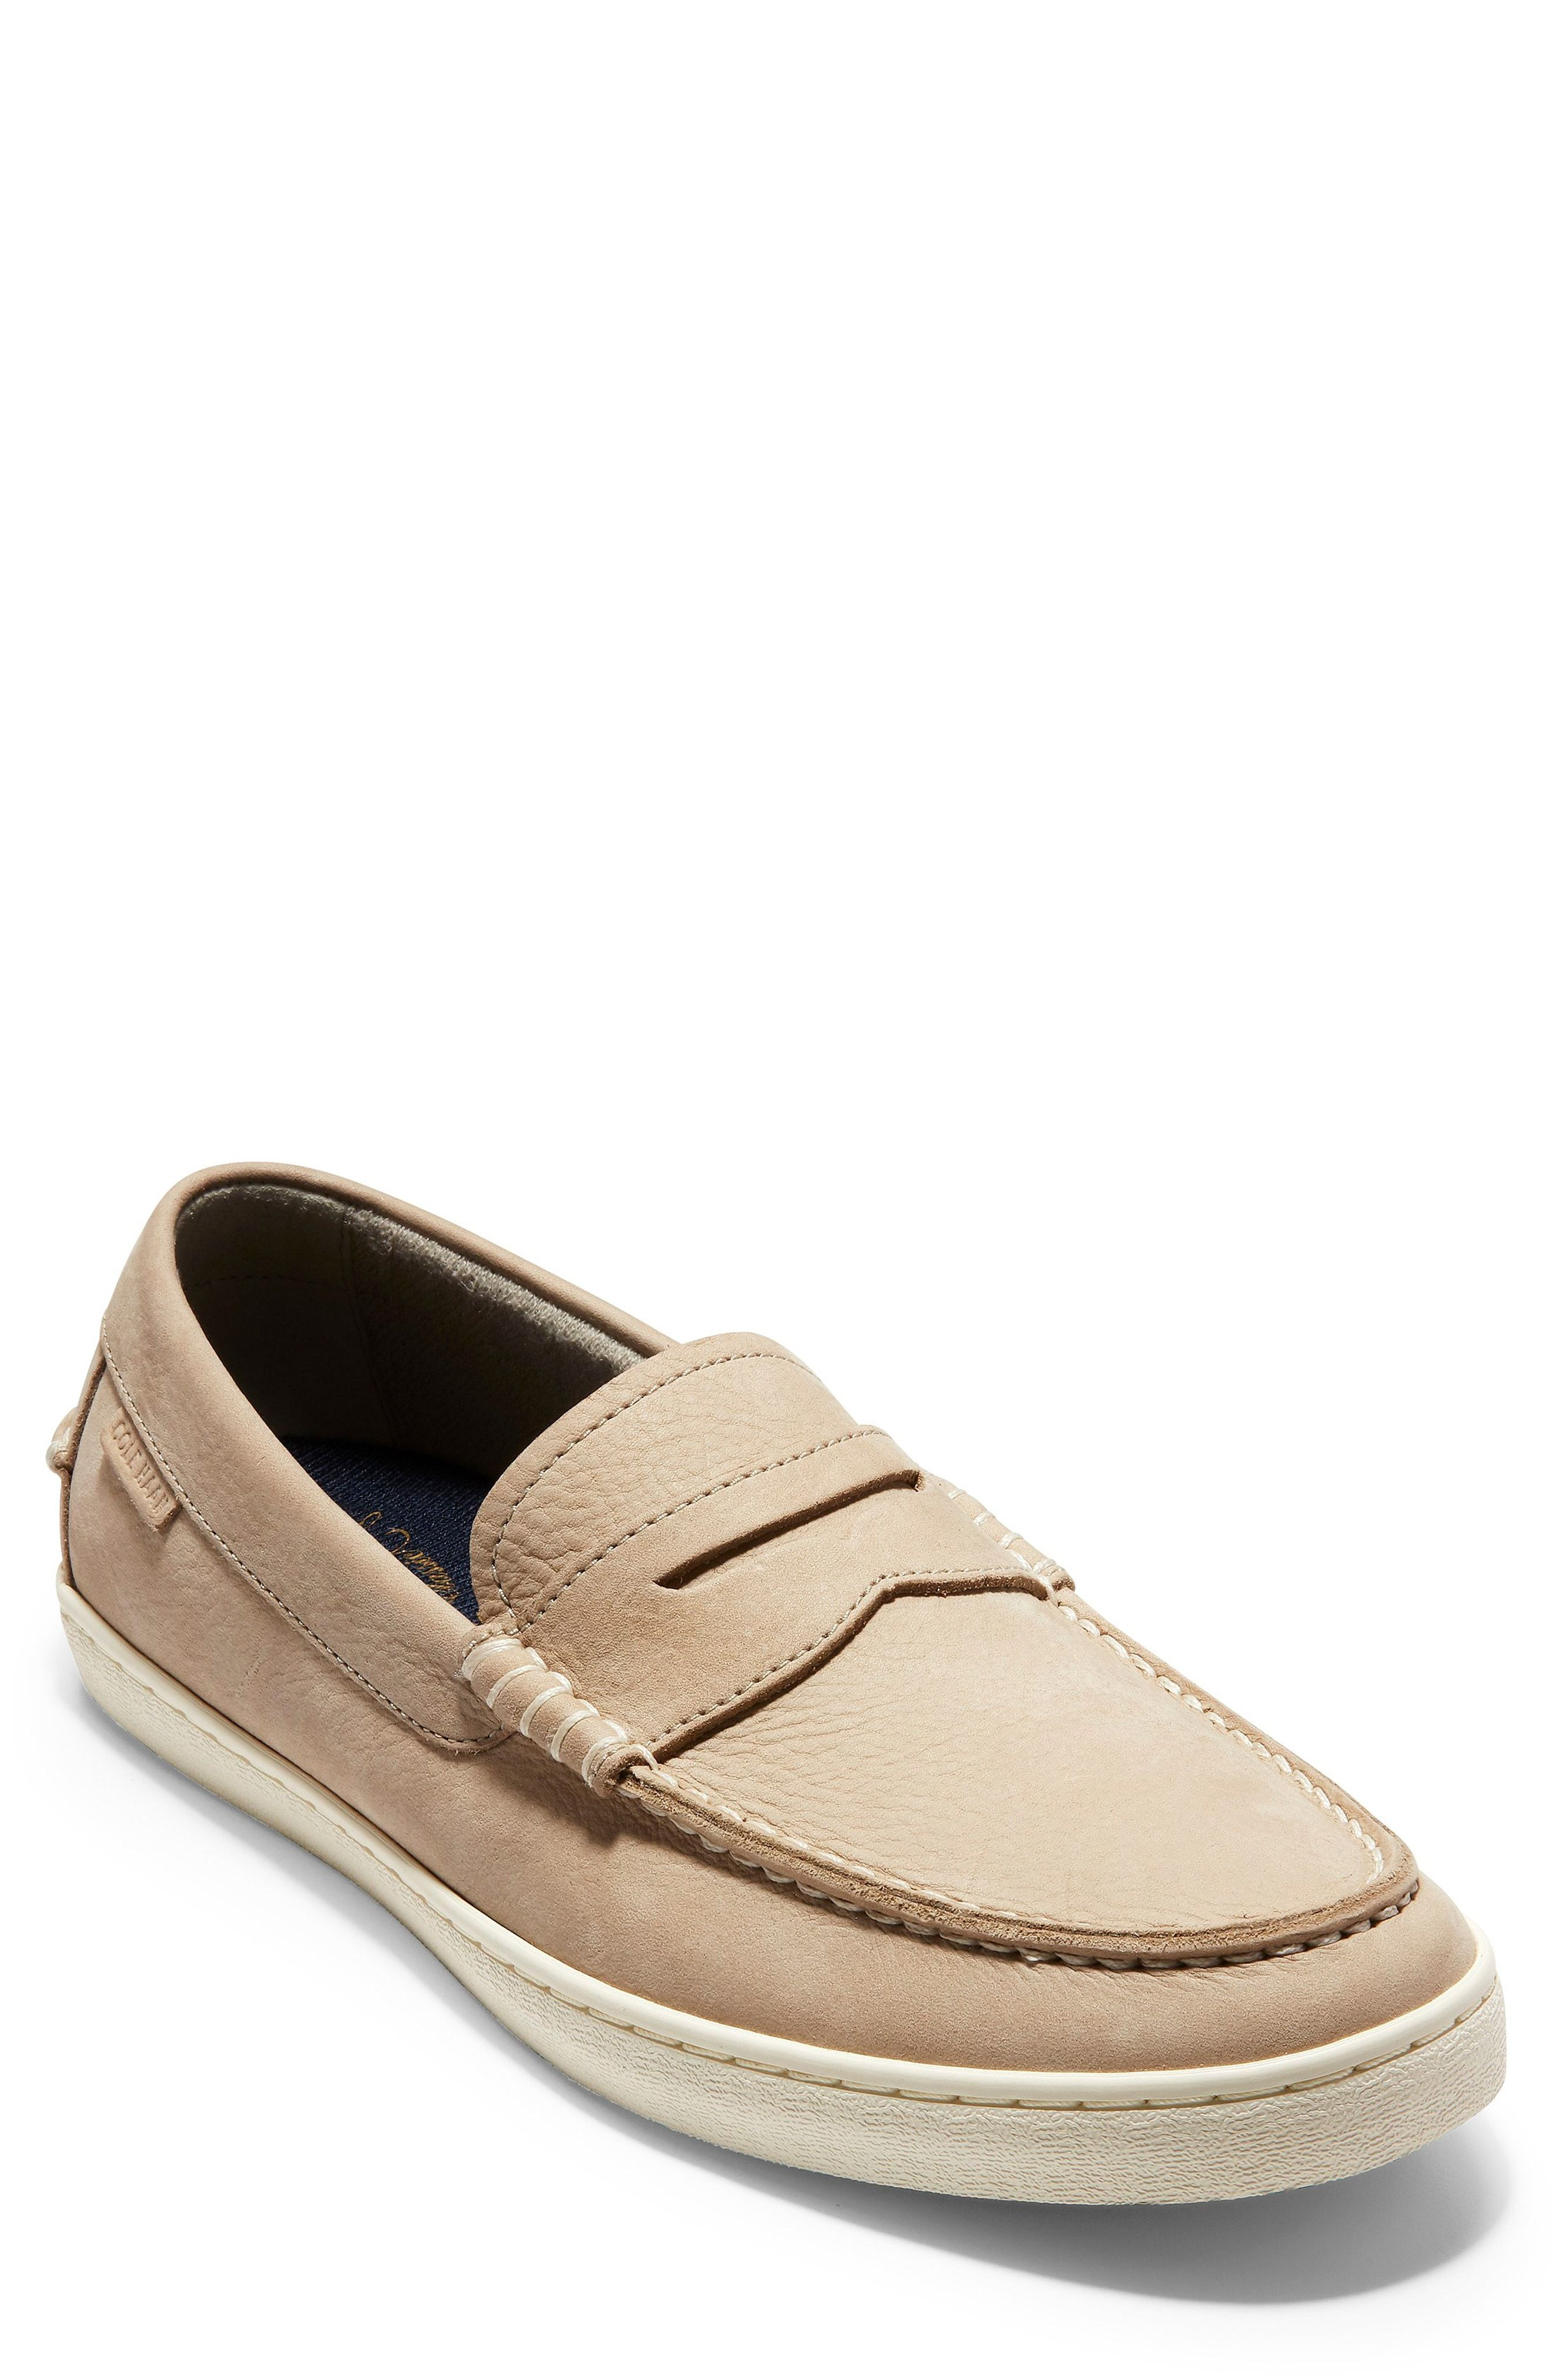 00dd2772074 COLE HAAN  PINCH WEEKEND  PENNY LOAFER.  colehaan  shoes